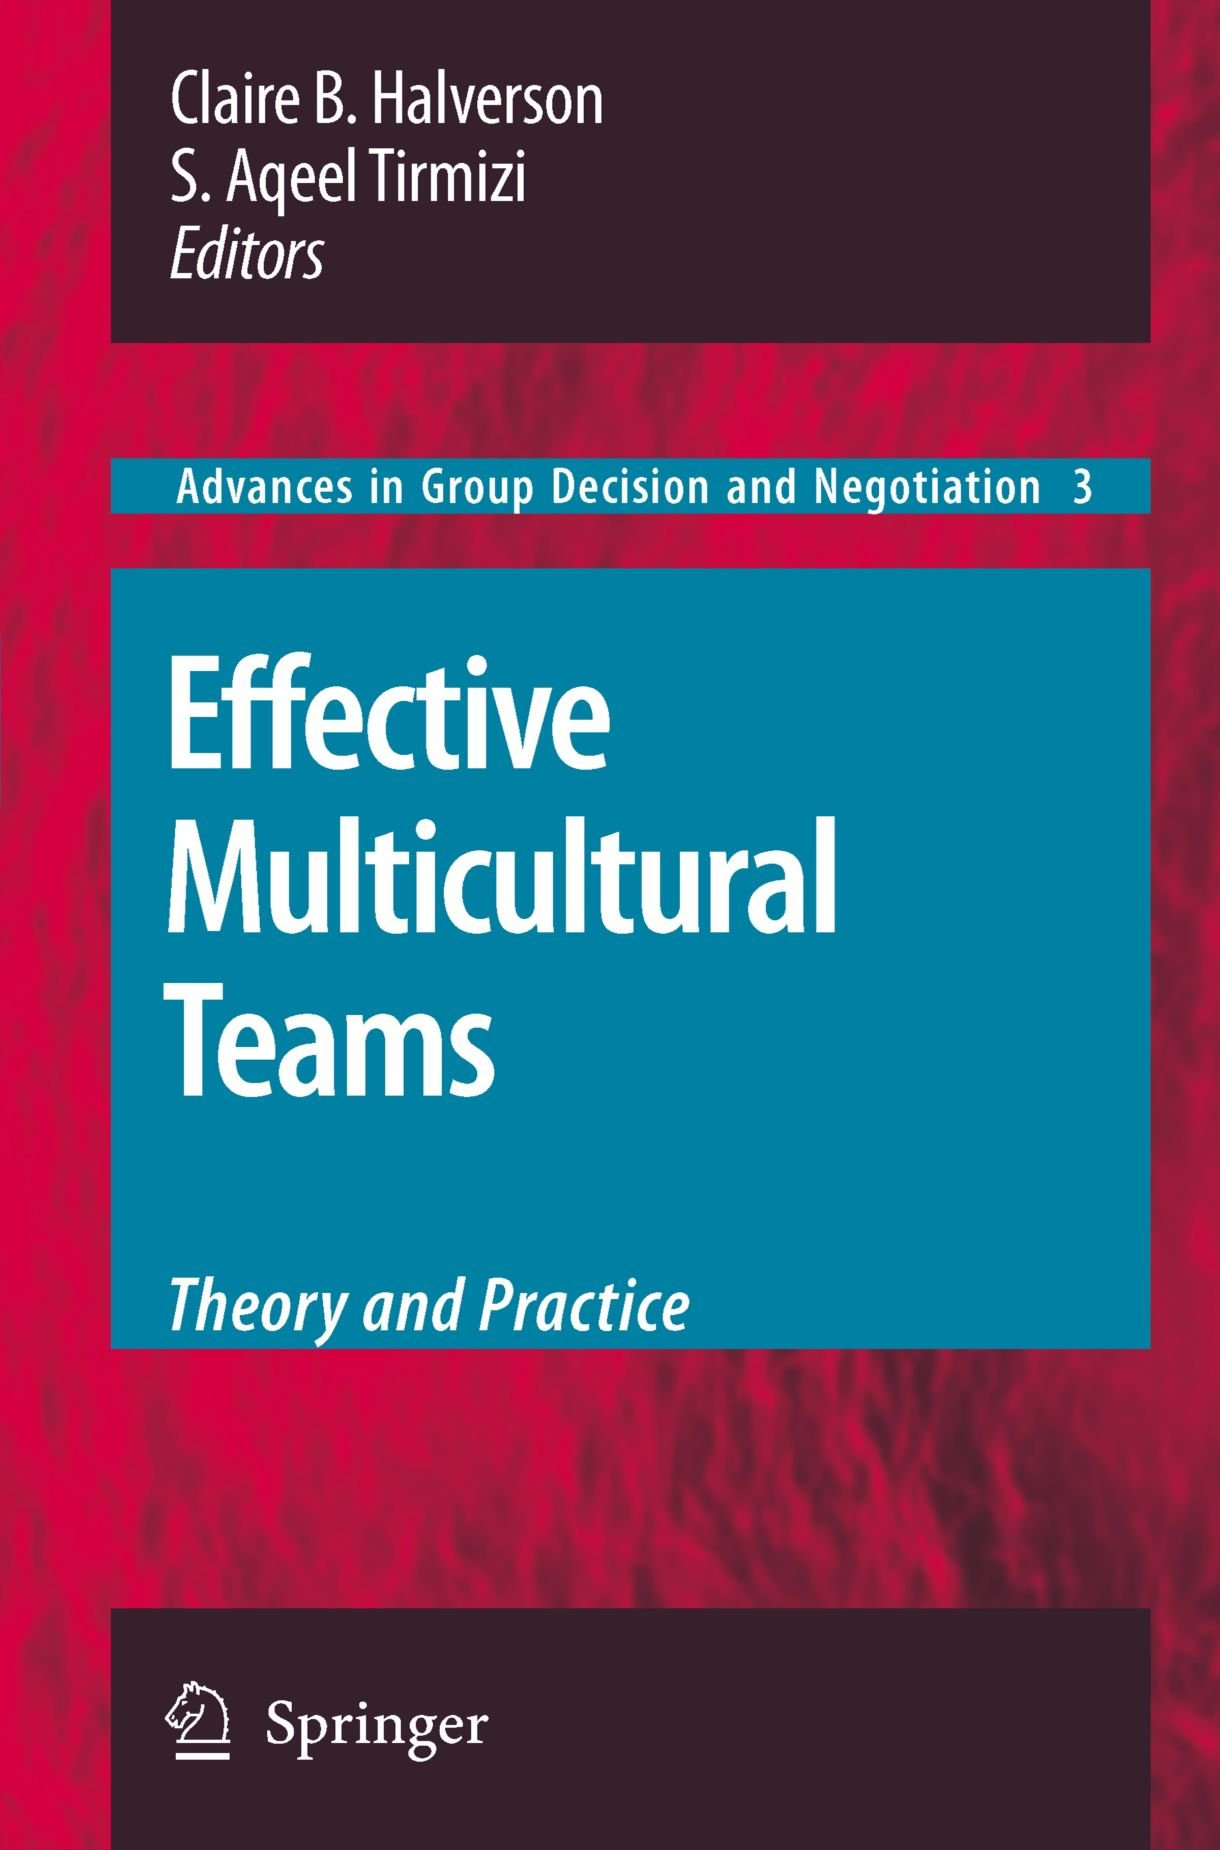 Effective Multicultural Teams: Theory and Practice (Advances in Group Decision and Negotiation)